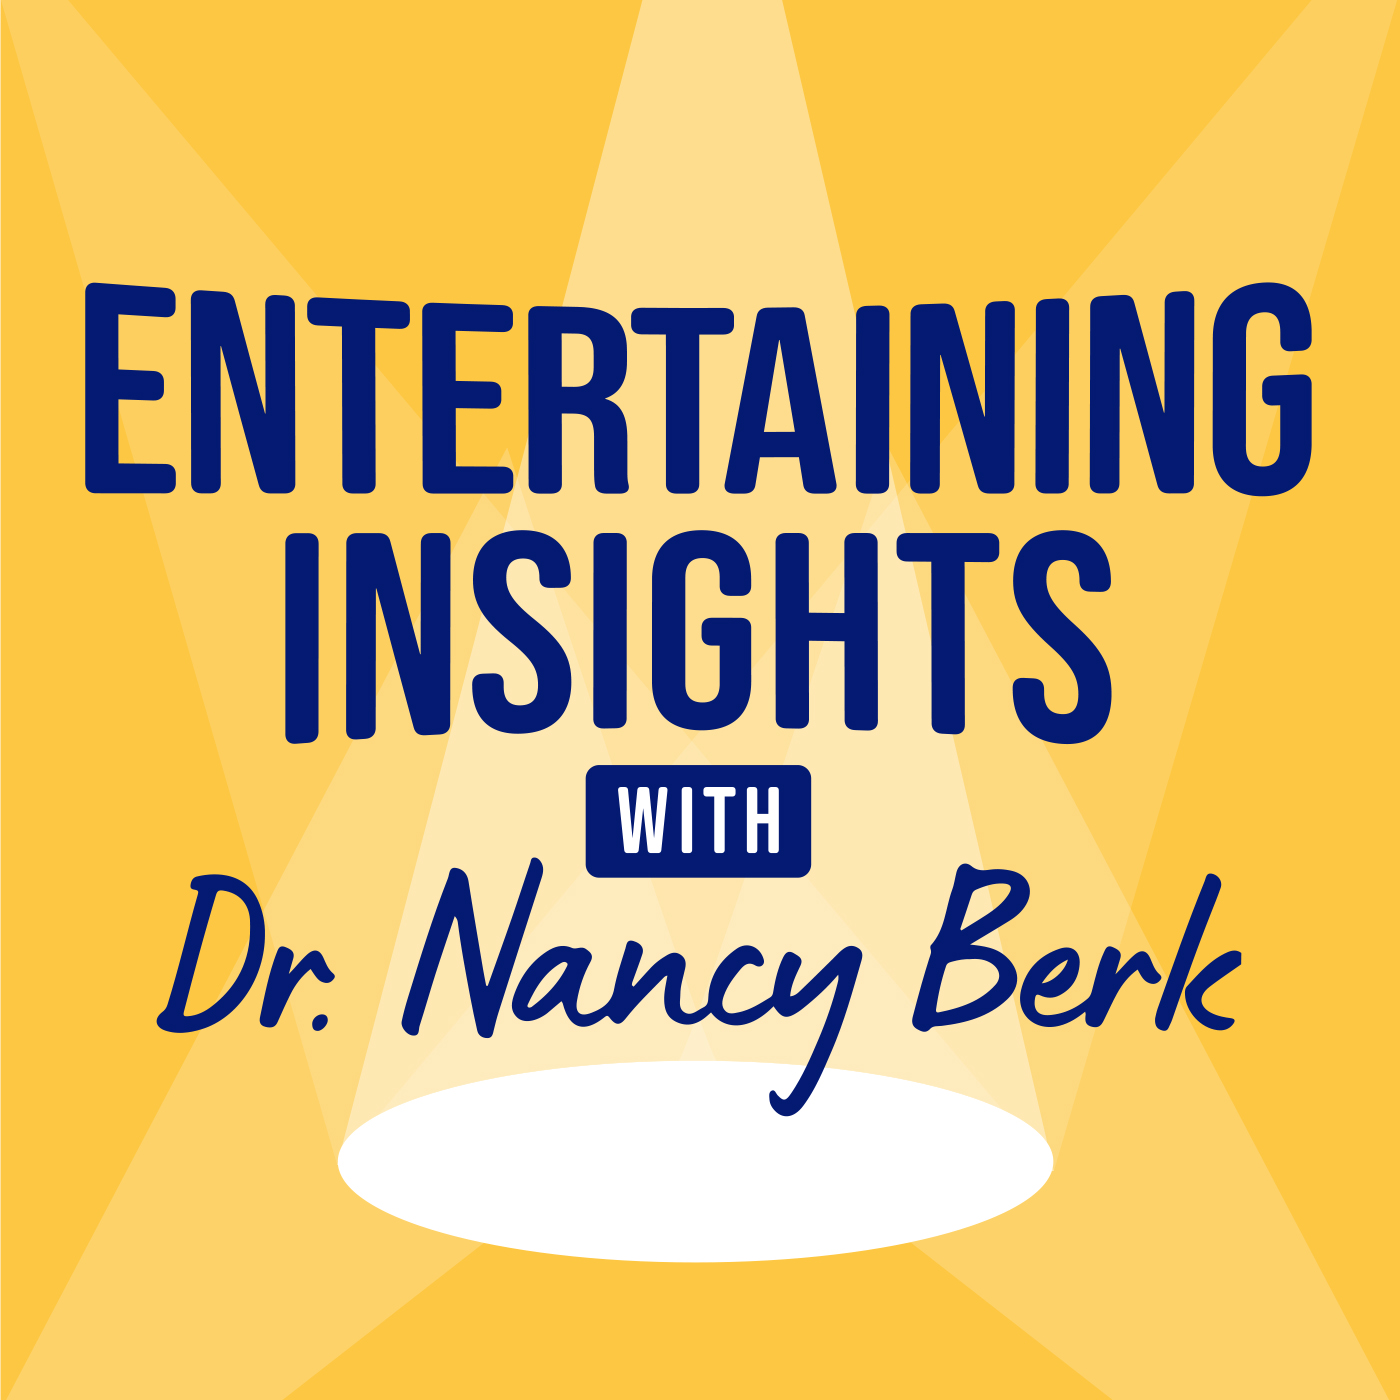 Entertaining Insights with Dr. Nancy Berk show art